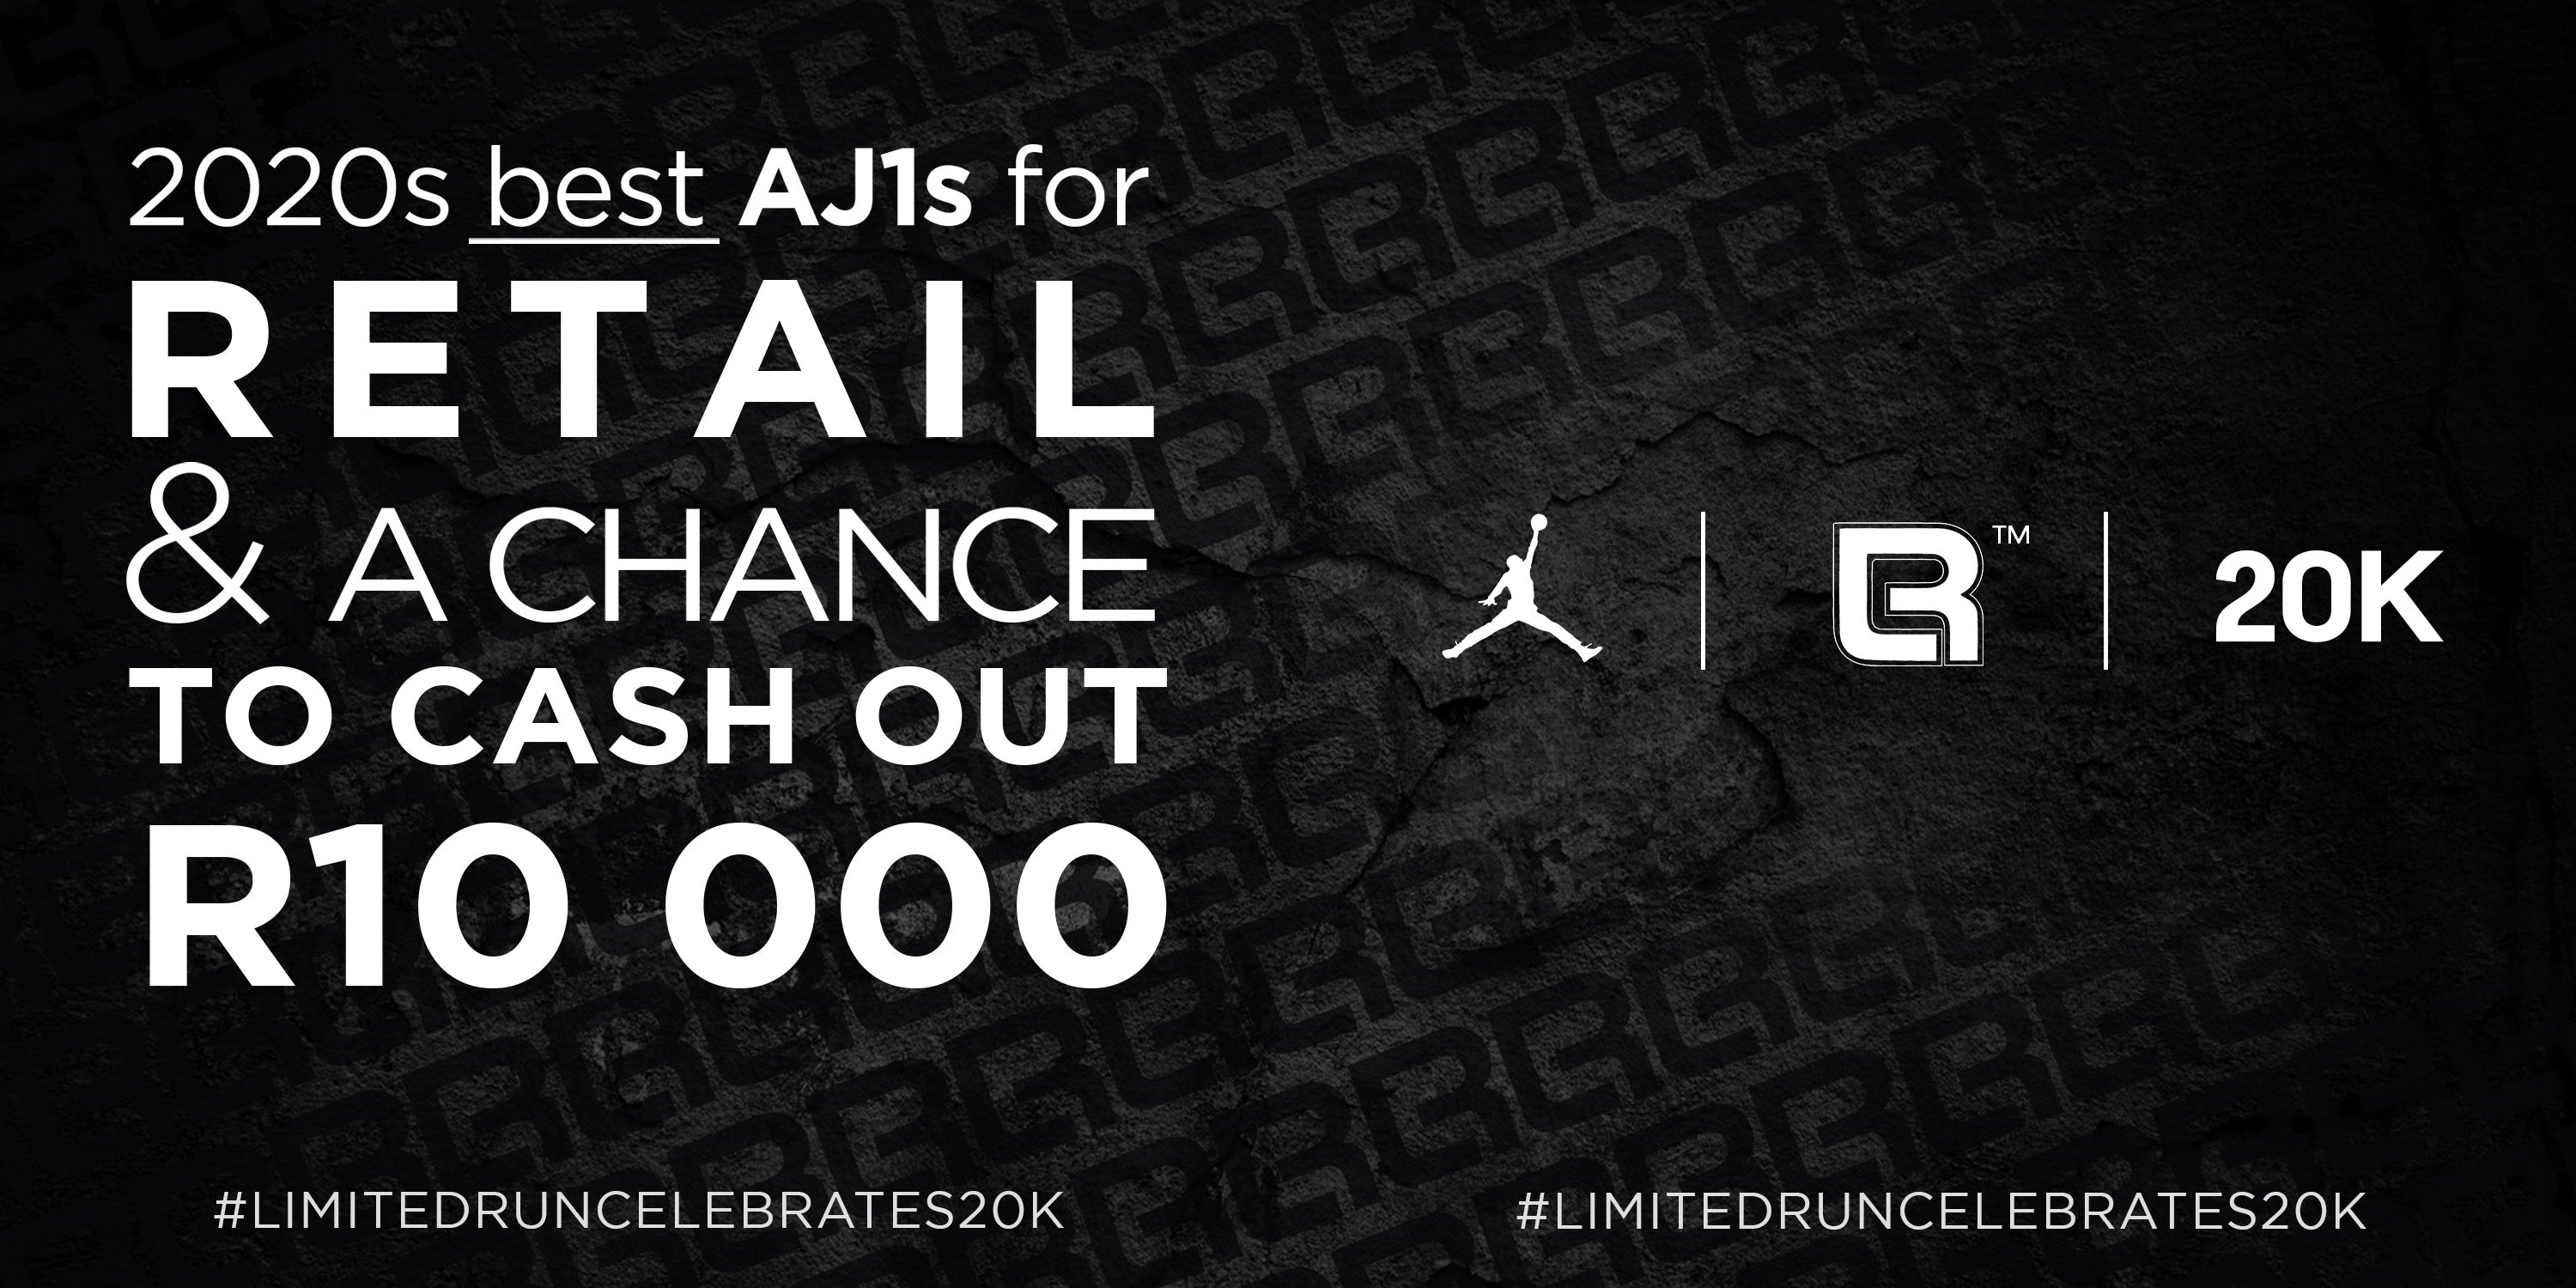 LIMITED RUN  celebrates 20k with 2020's best AJ1s for retail and a chance to cash out R10 000!